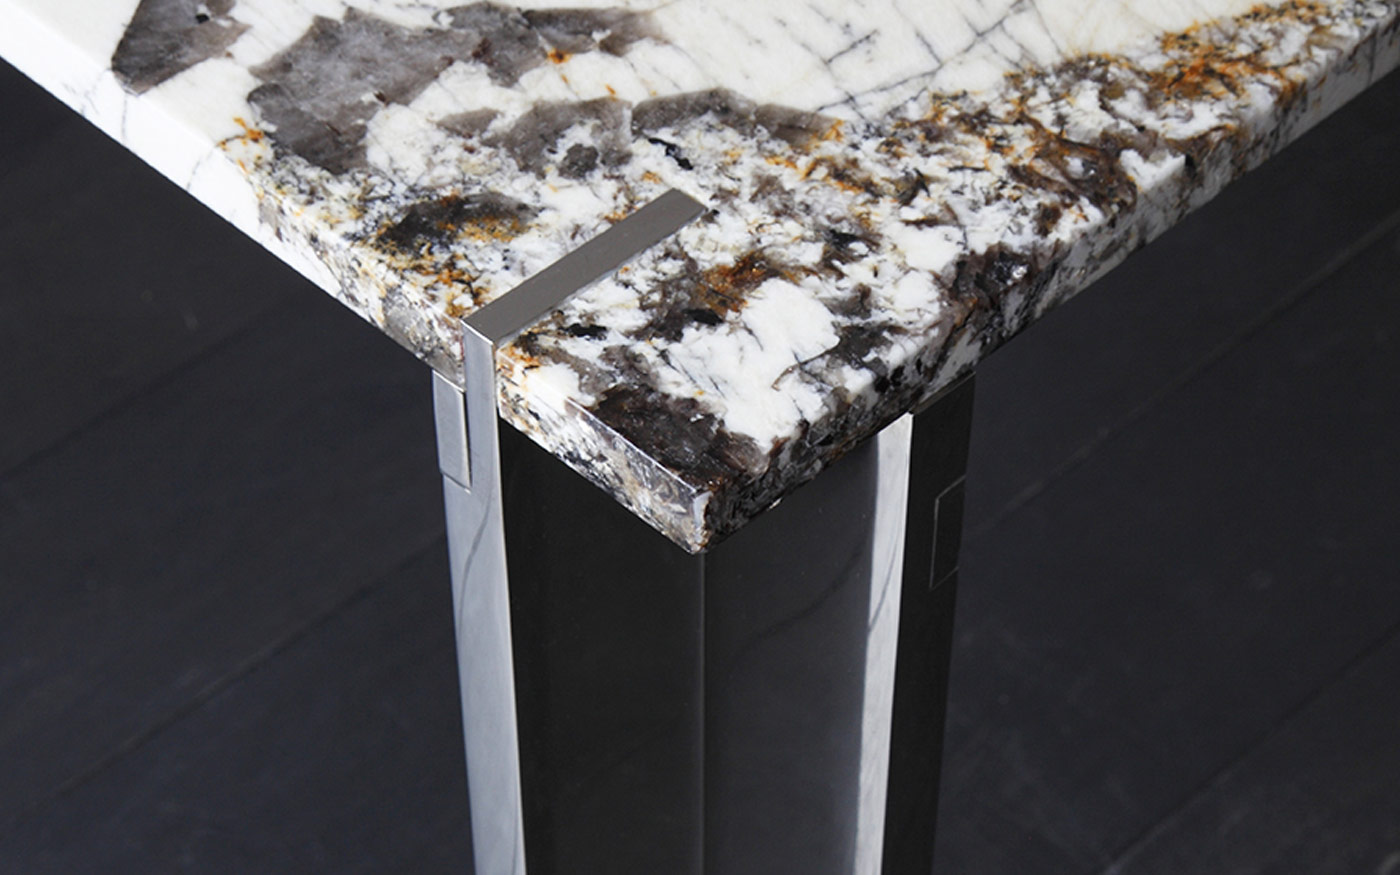 Corner detail of Nickel plated dining table with Patagonia Quartzite top